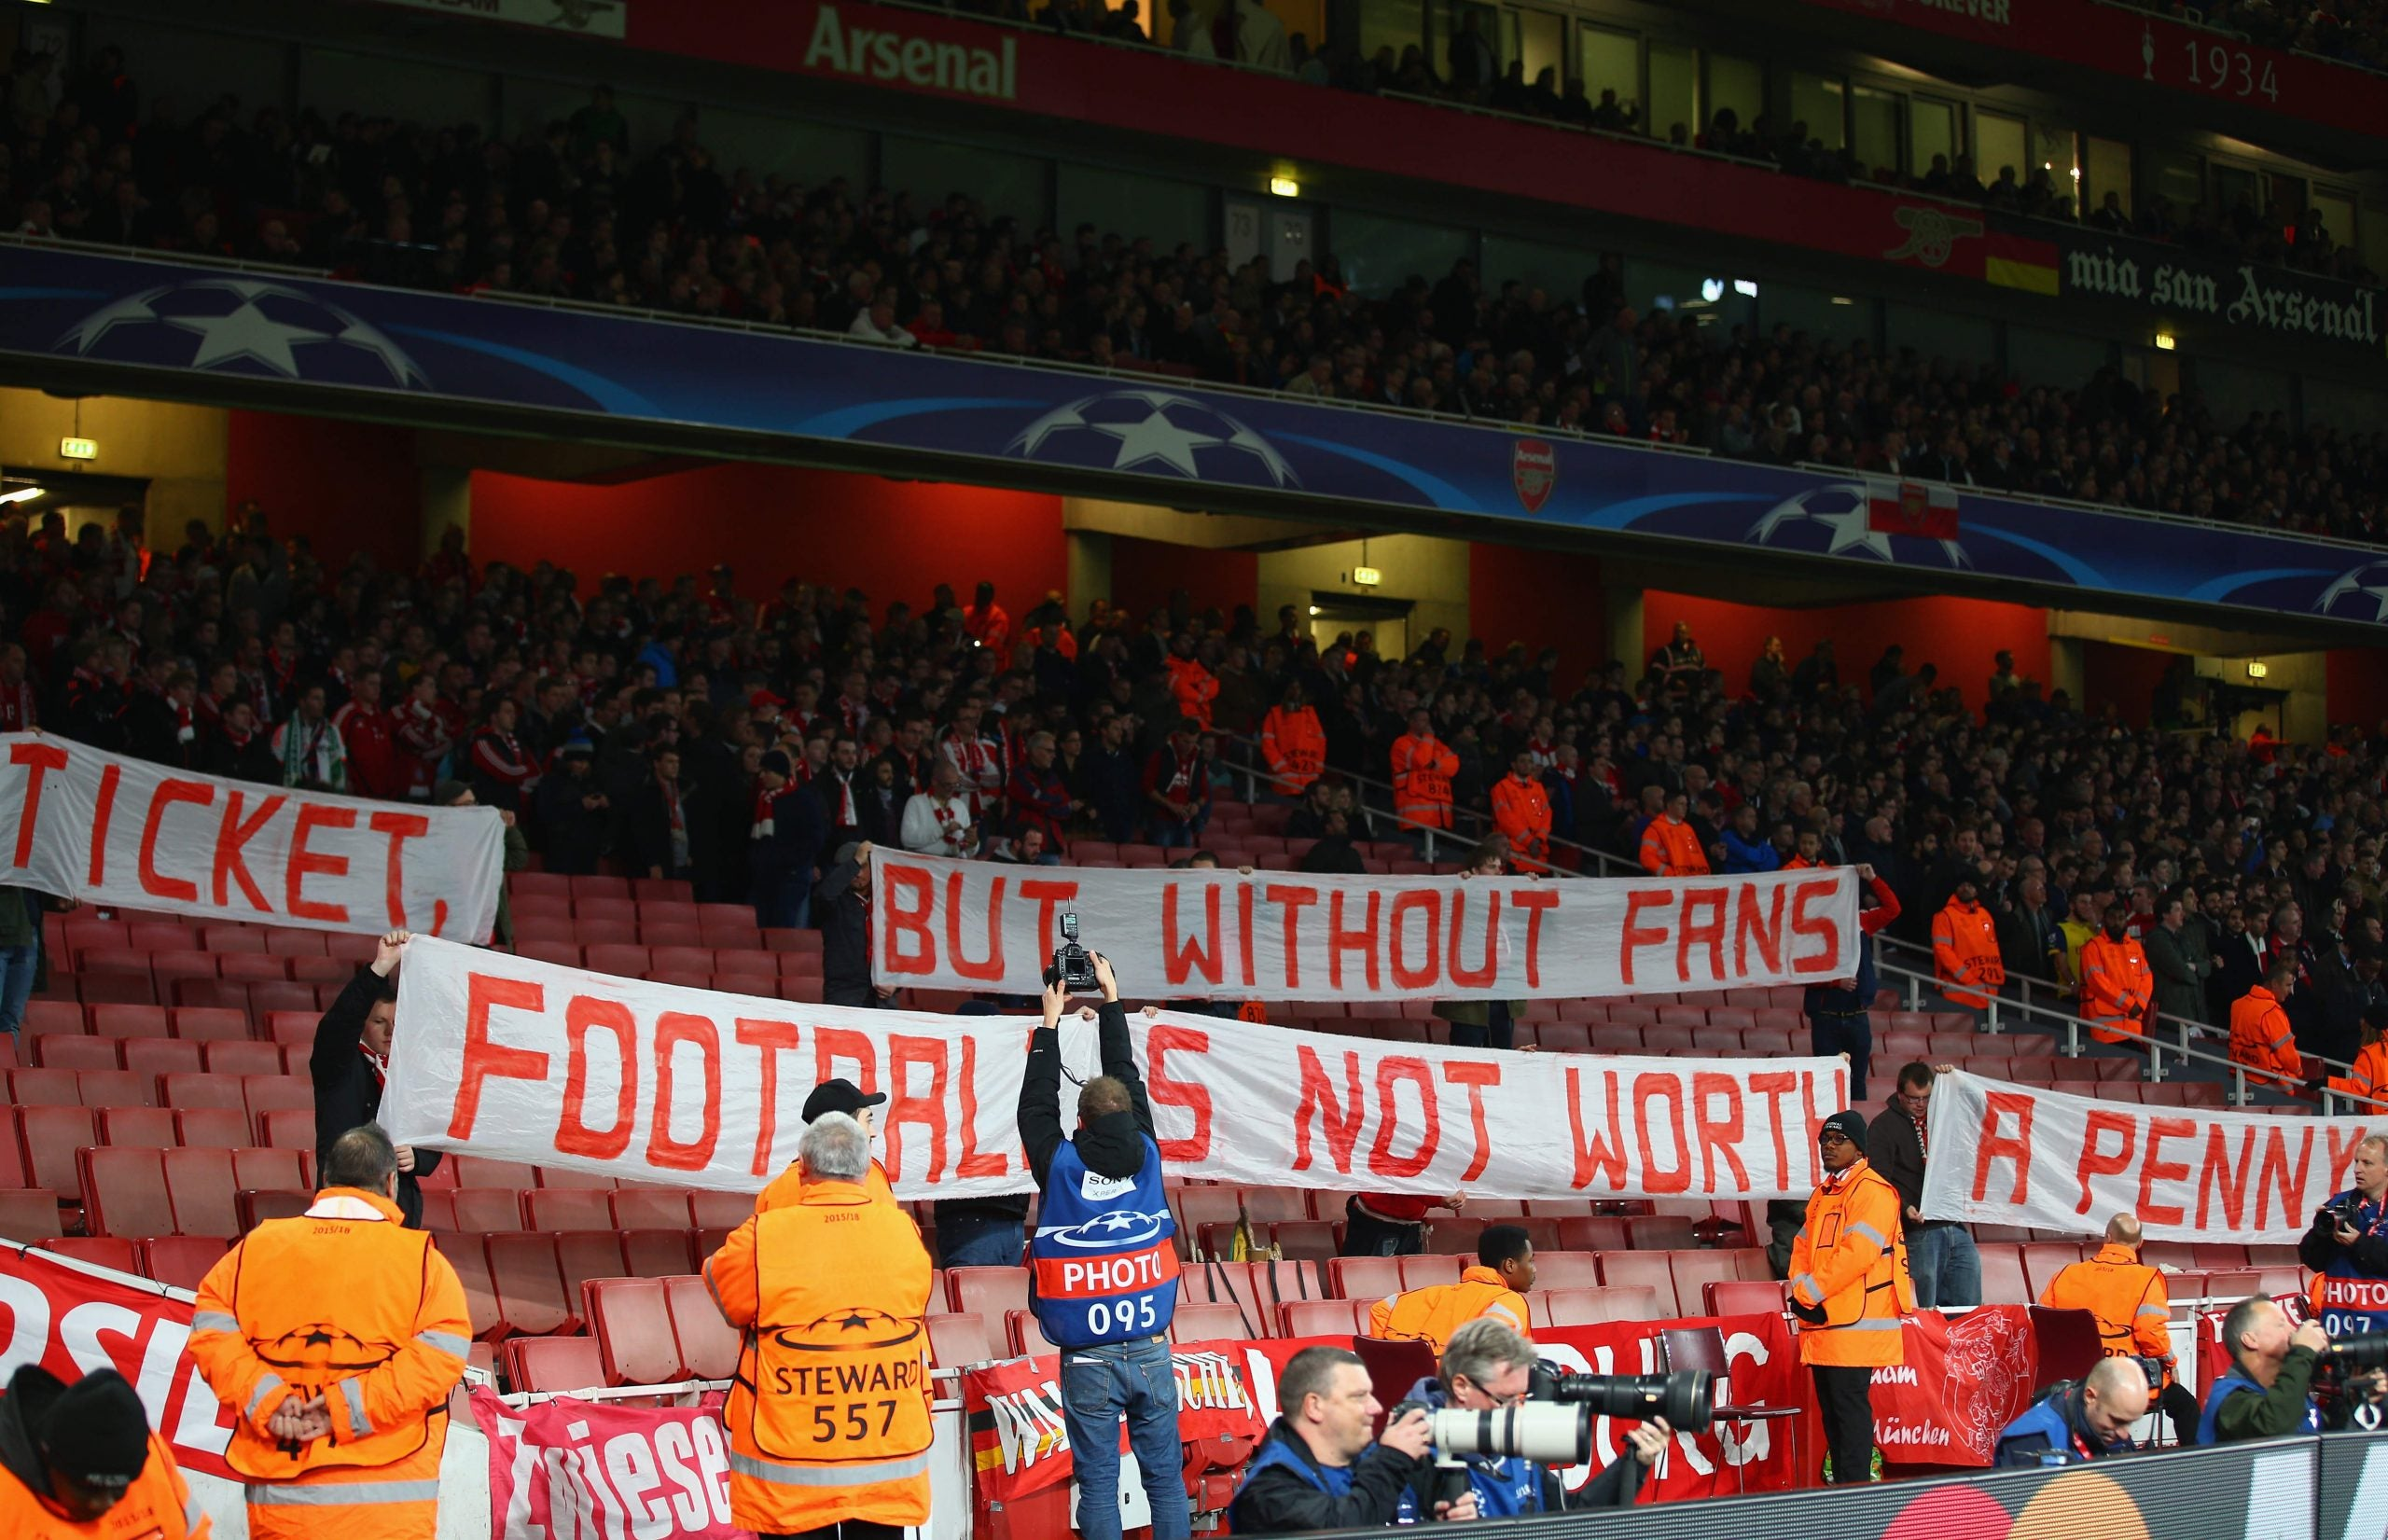 Football needs fans - so go on, make tickets free